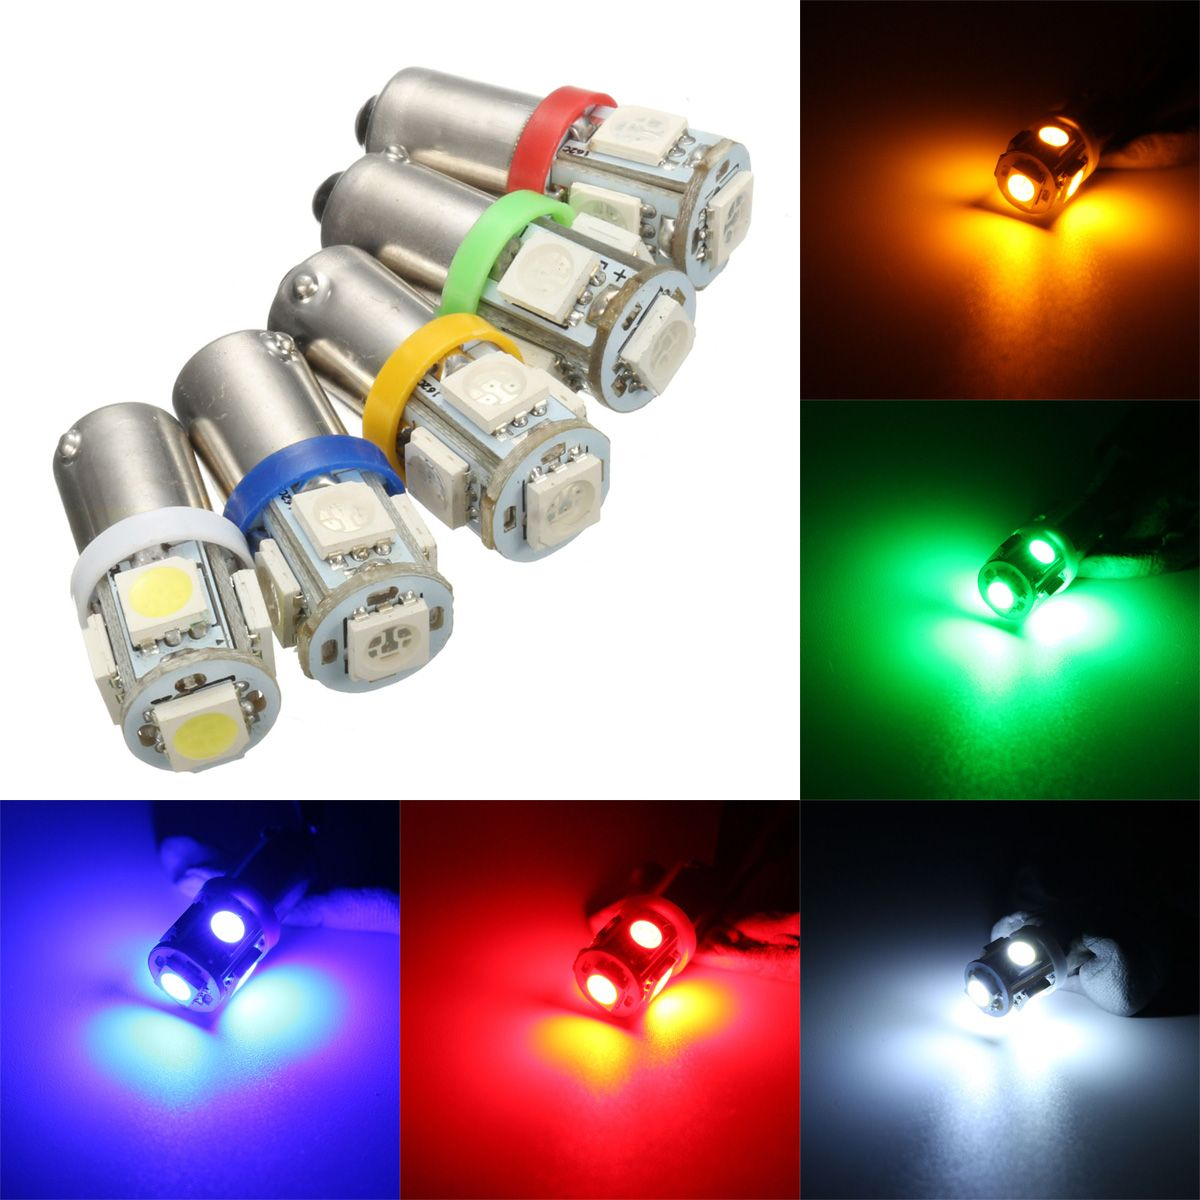 Car 12v 5 Smd Led Ba9s T4w W5w T10 Indicator Light Bulb Lamp 5 Color Car Lights From Automobiles Motorcycles On Banggood Com Light Bulb Lamp Indicator Lights Light Bulb